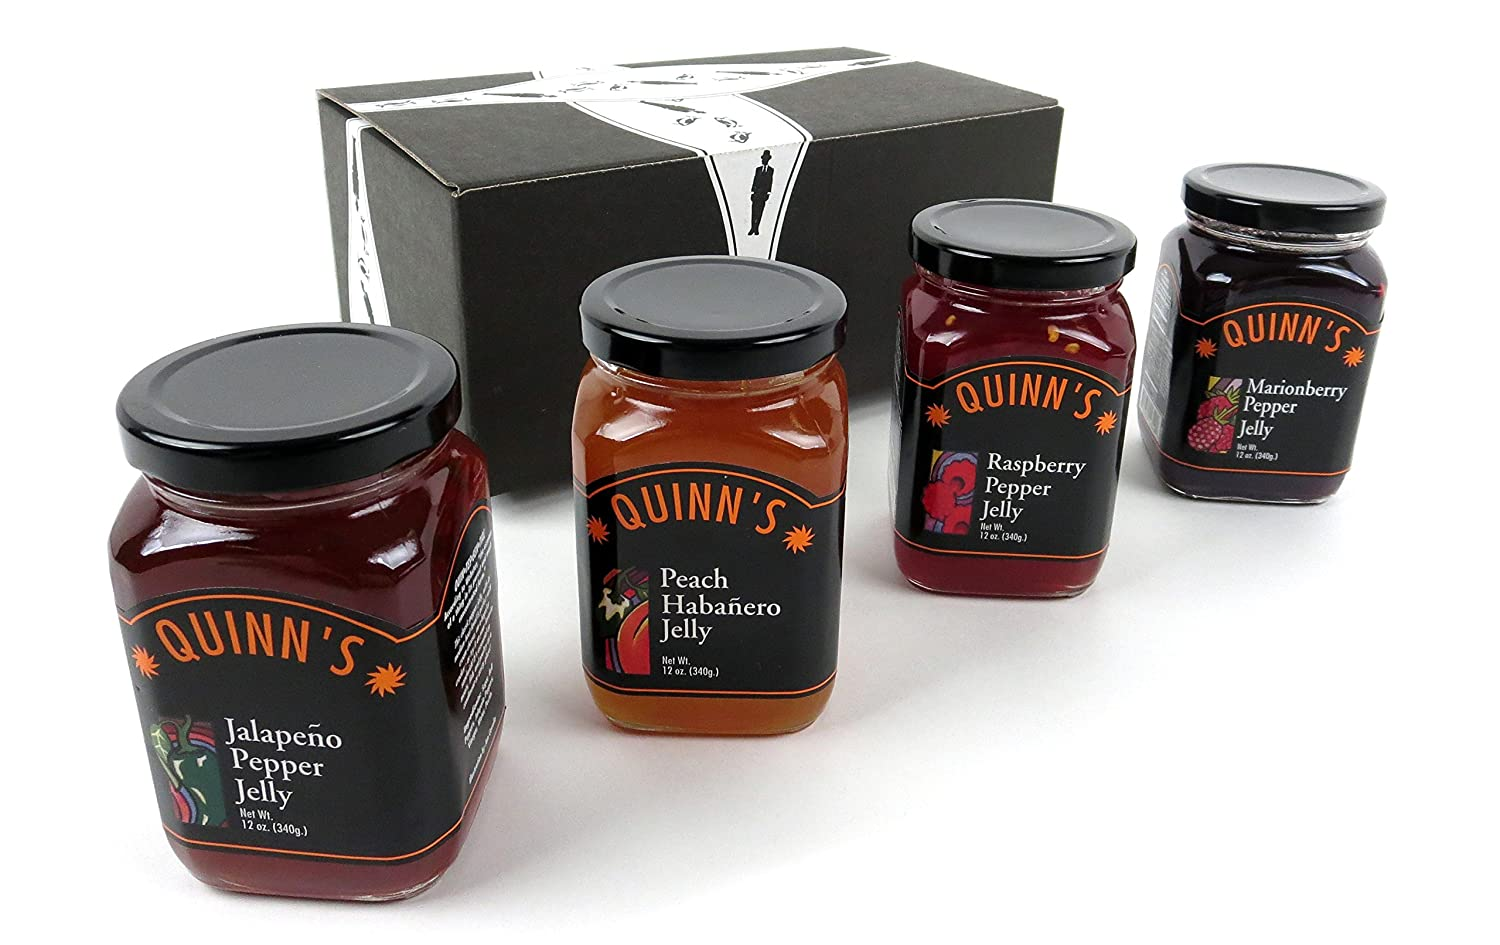 Quinn's Pepper Jelly 4-Flavor Variety: One 12 oz Jar Each of Jalapeño, Peach Habanero, Raspberry, Marionberry in a BlackTie Box (4 Items Total)